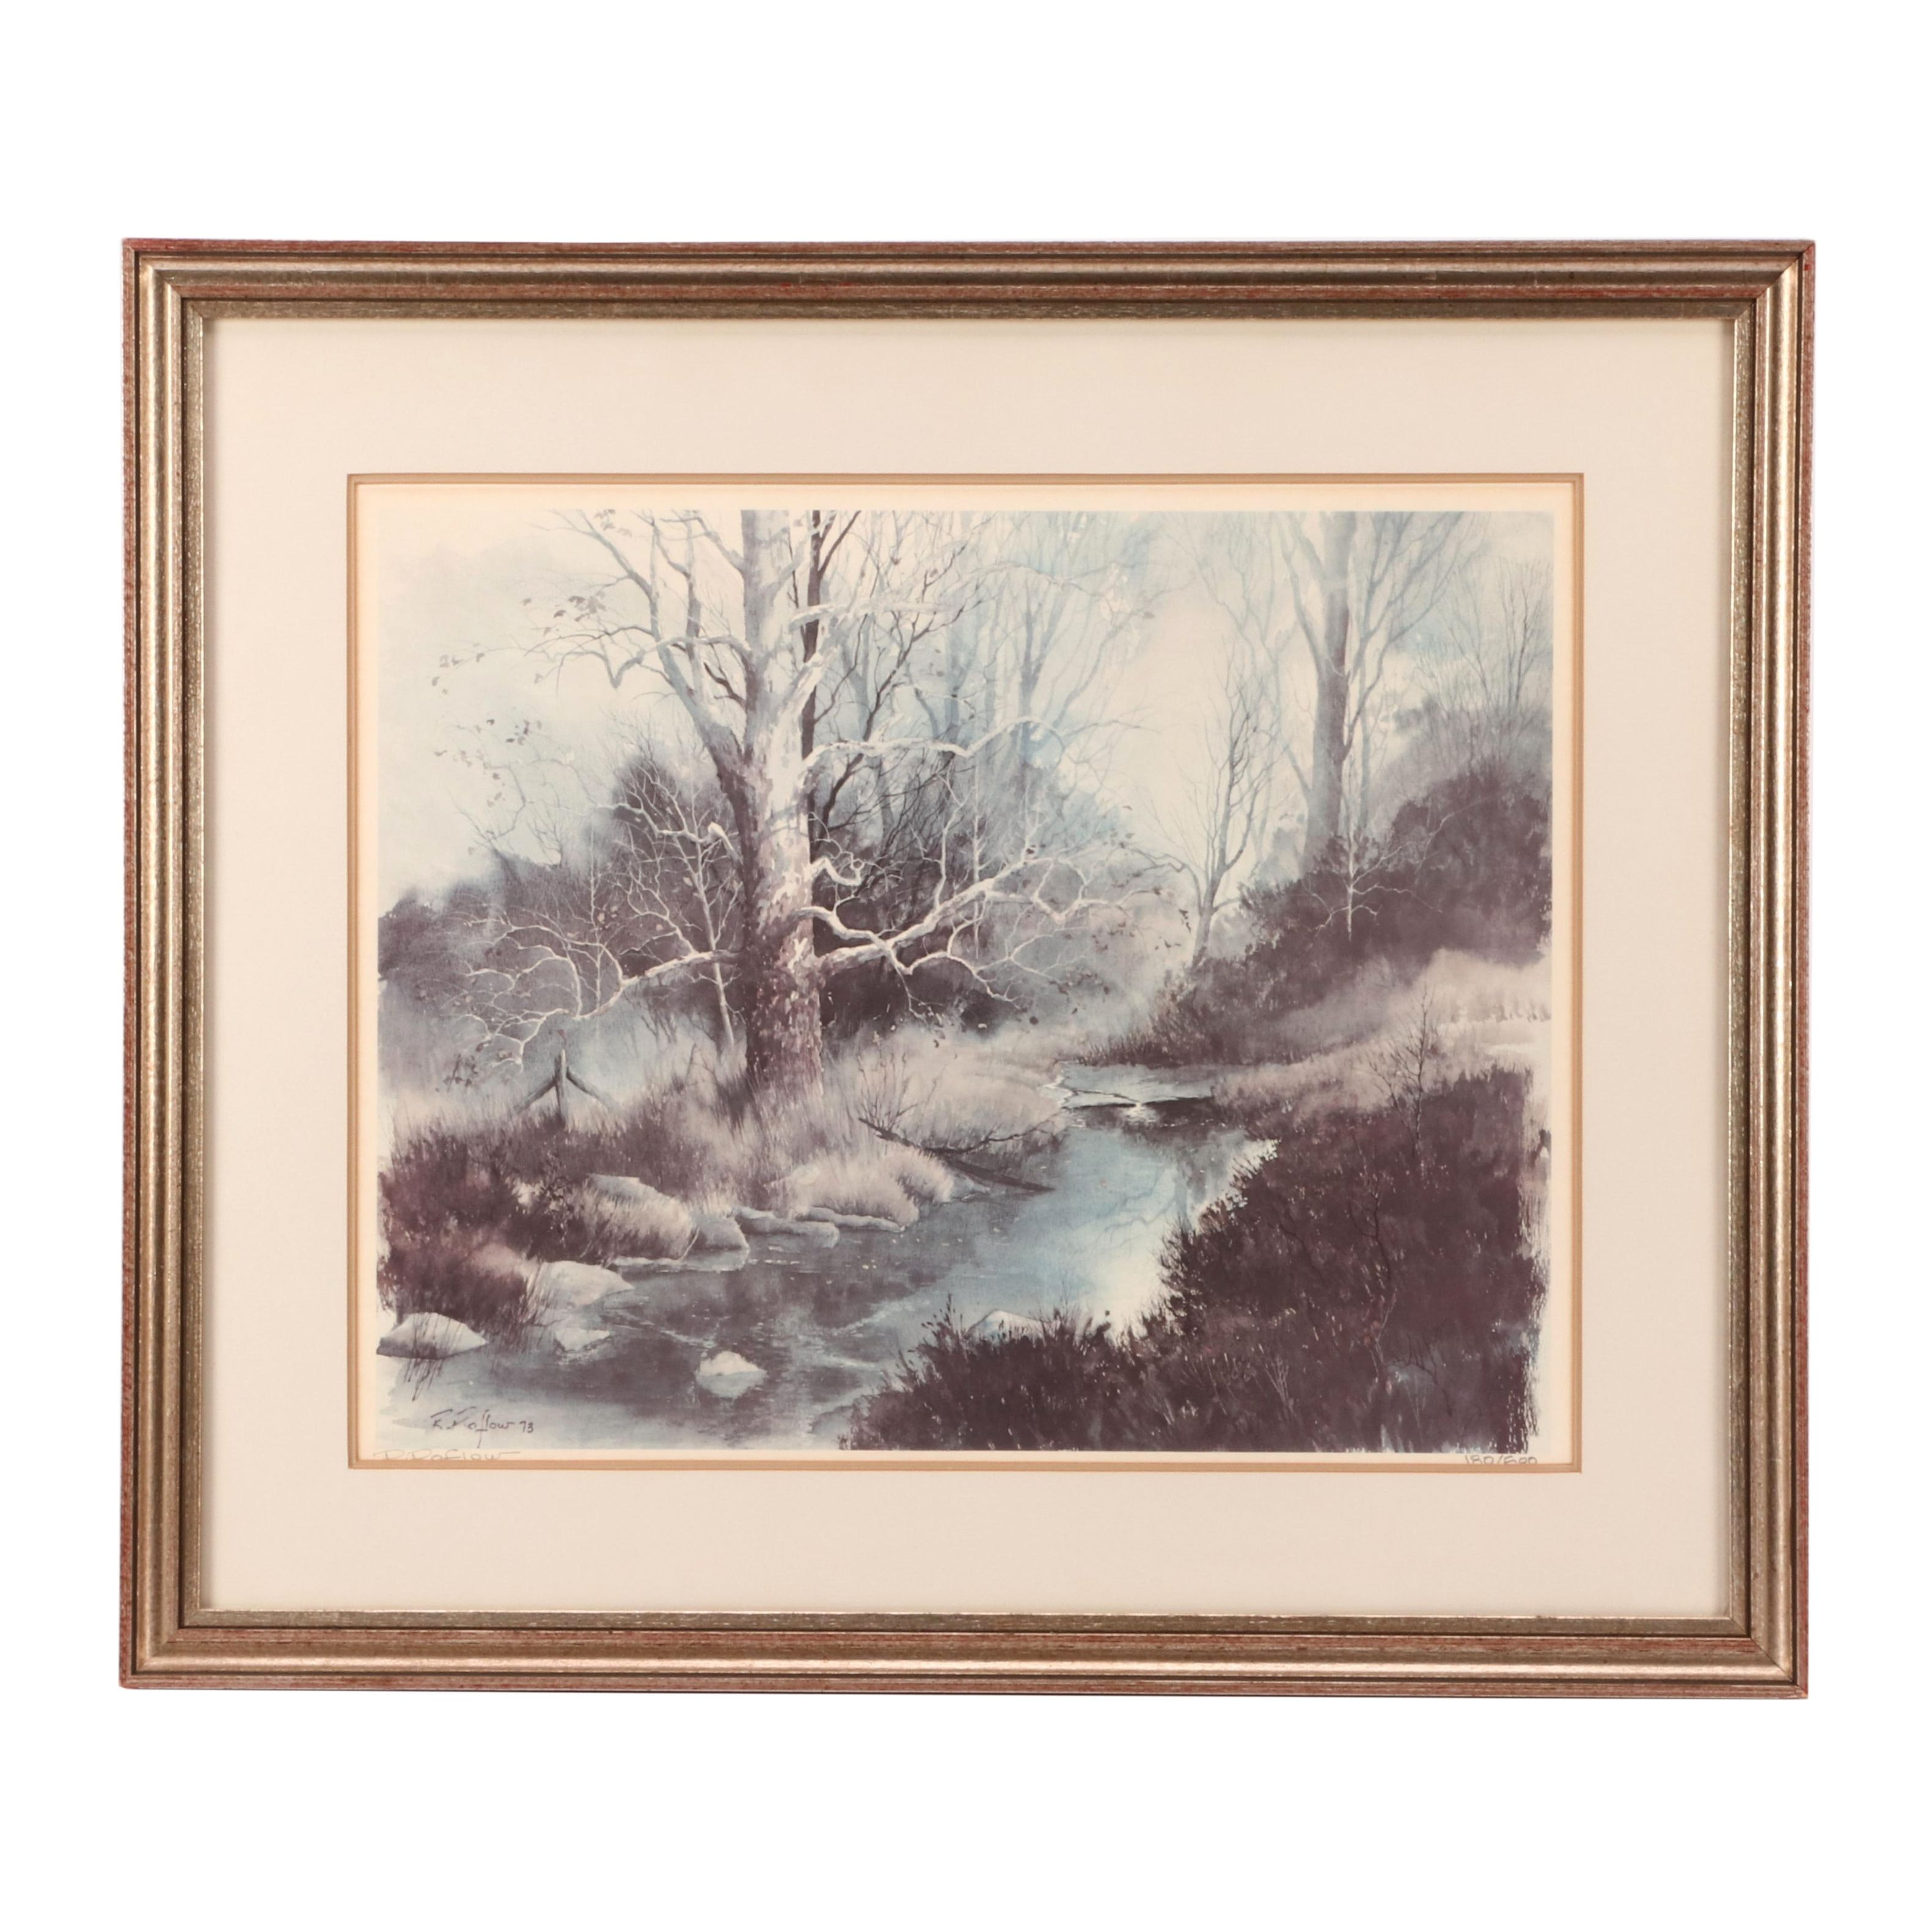 Richard Roflow Limited Edition Offset Lithograph